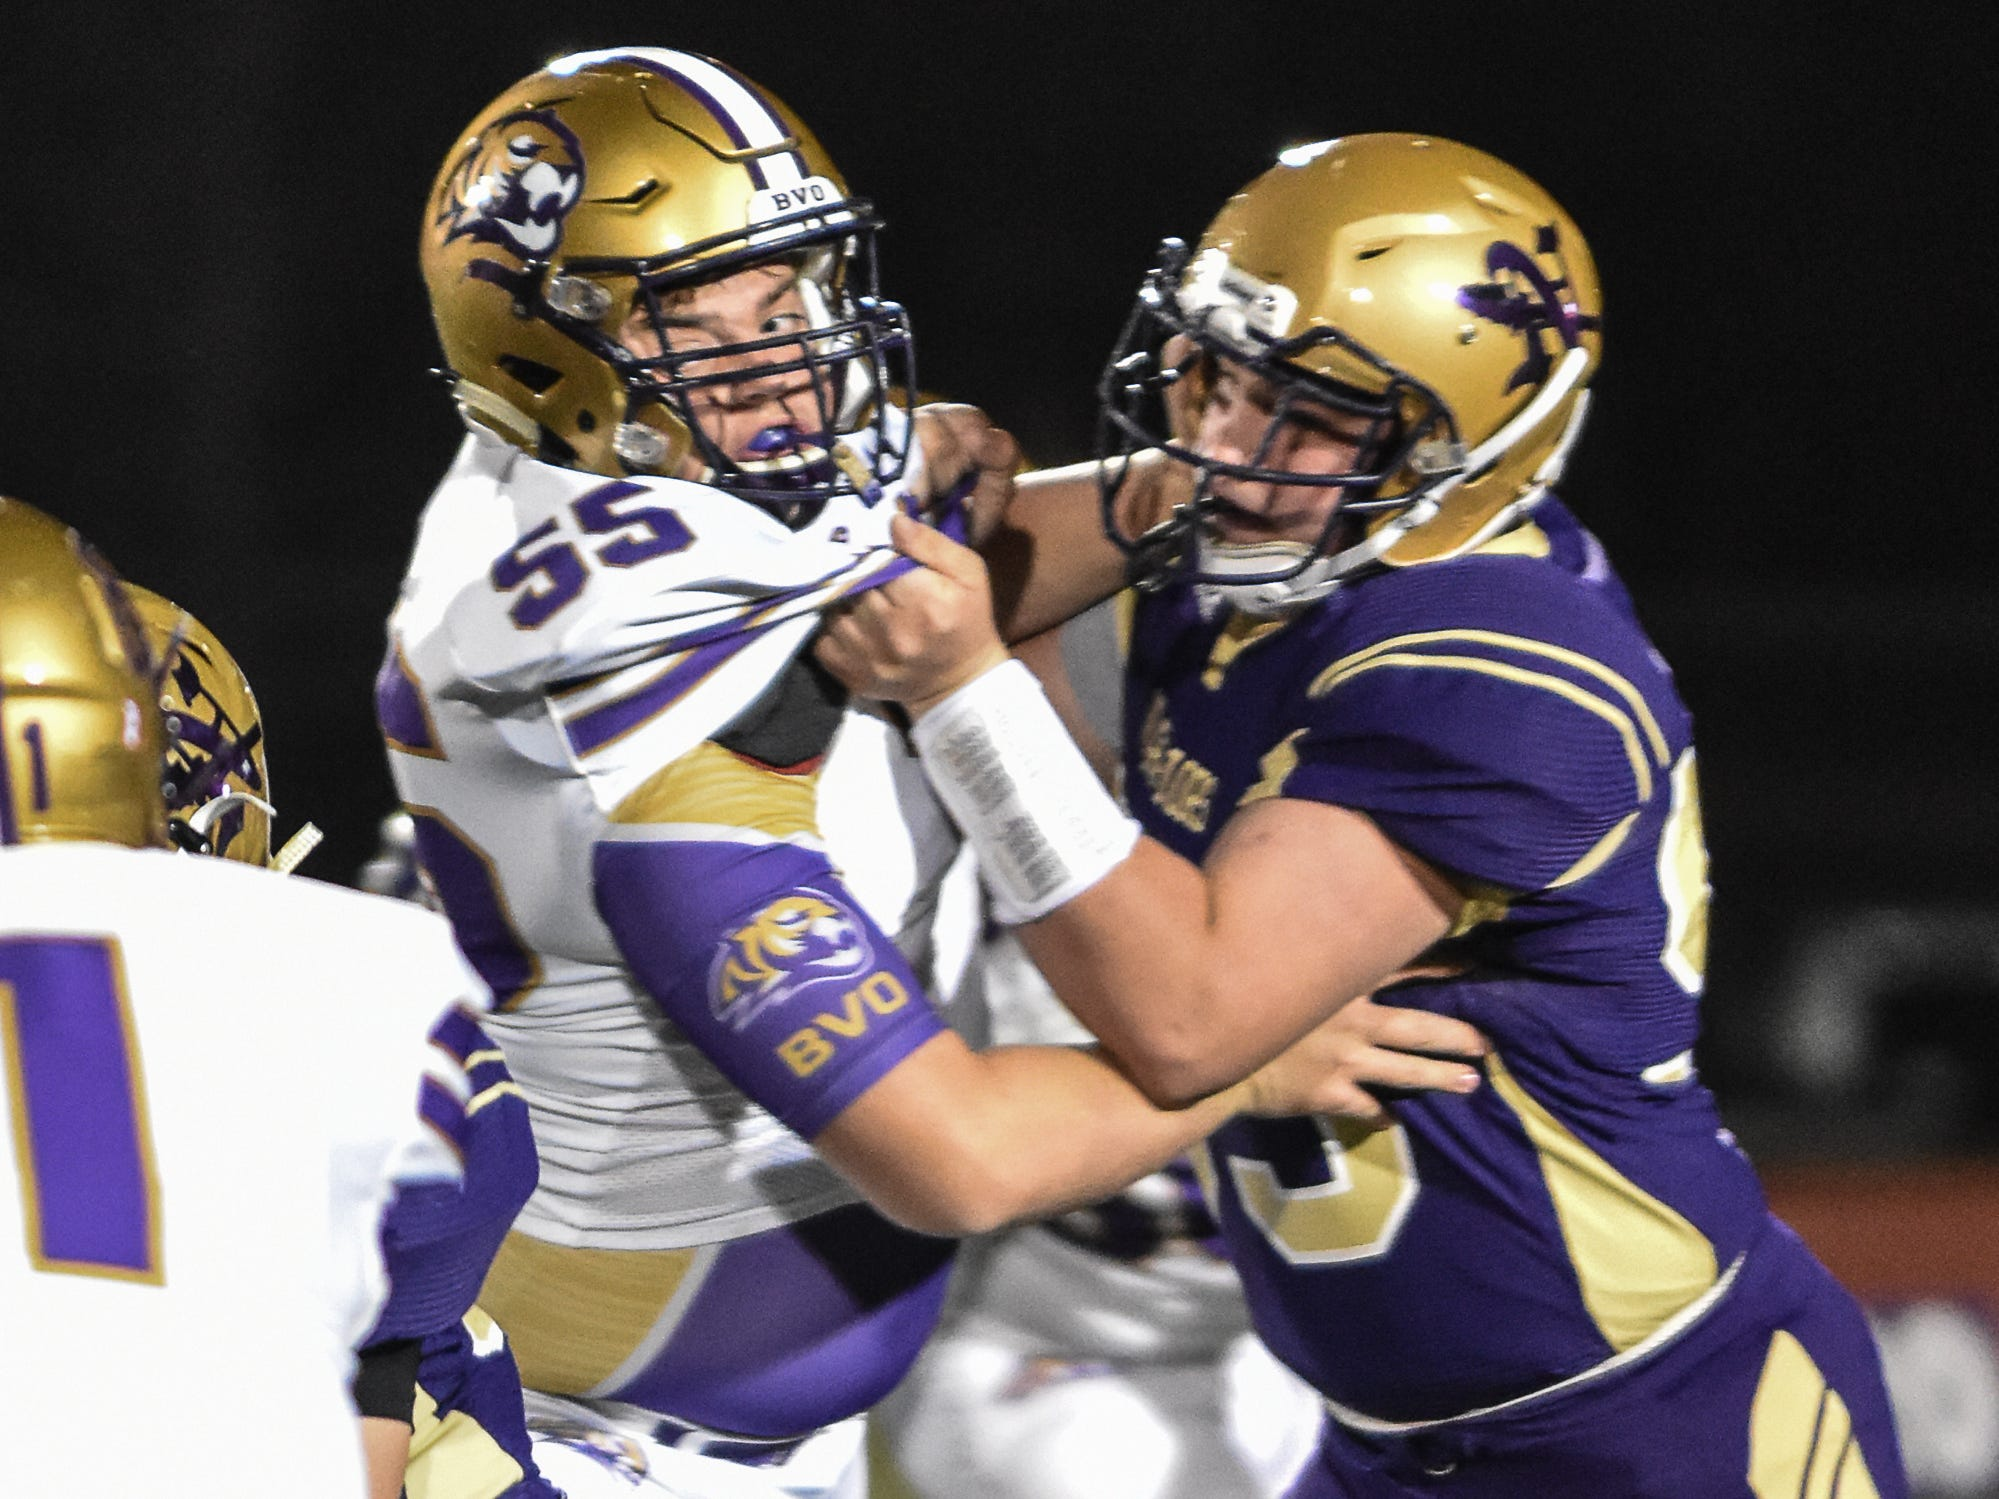 Norwalk's Caleb Greenslit  blocks Spender's Ryan VerMulm during a first-round playoff game Friday in Norwalk. Spencer ended Norwalk's season Oct. 26, 2018, with a 24-20 win in the first round of the Class 3A playoffs.